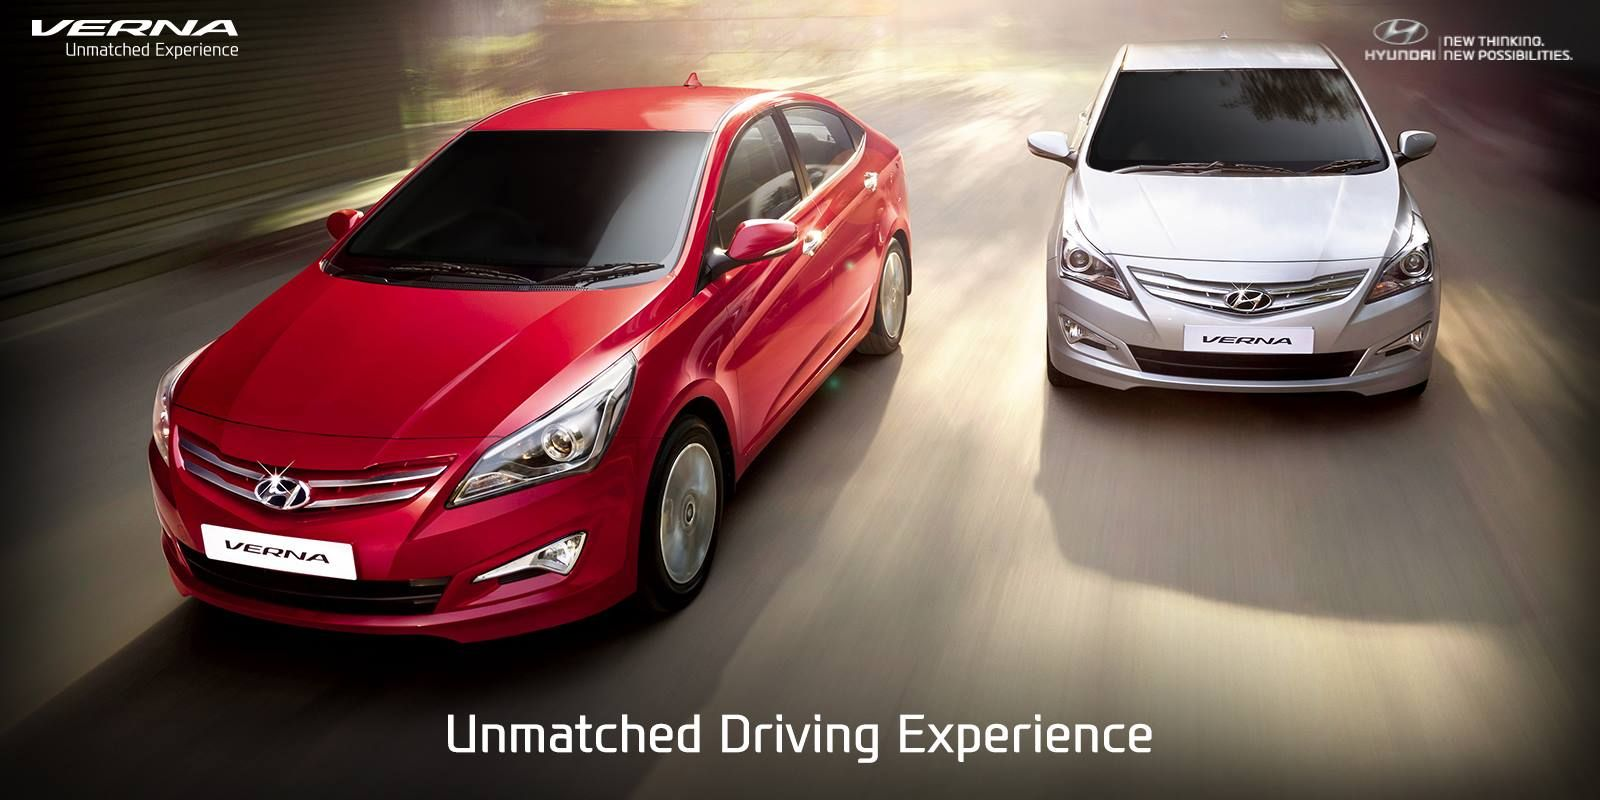 The Unmatched Driving Experience of # Hyundai # Verna ...